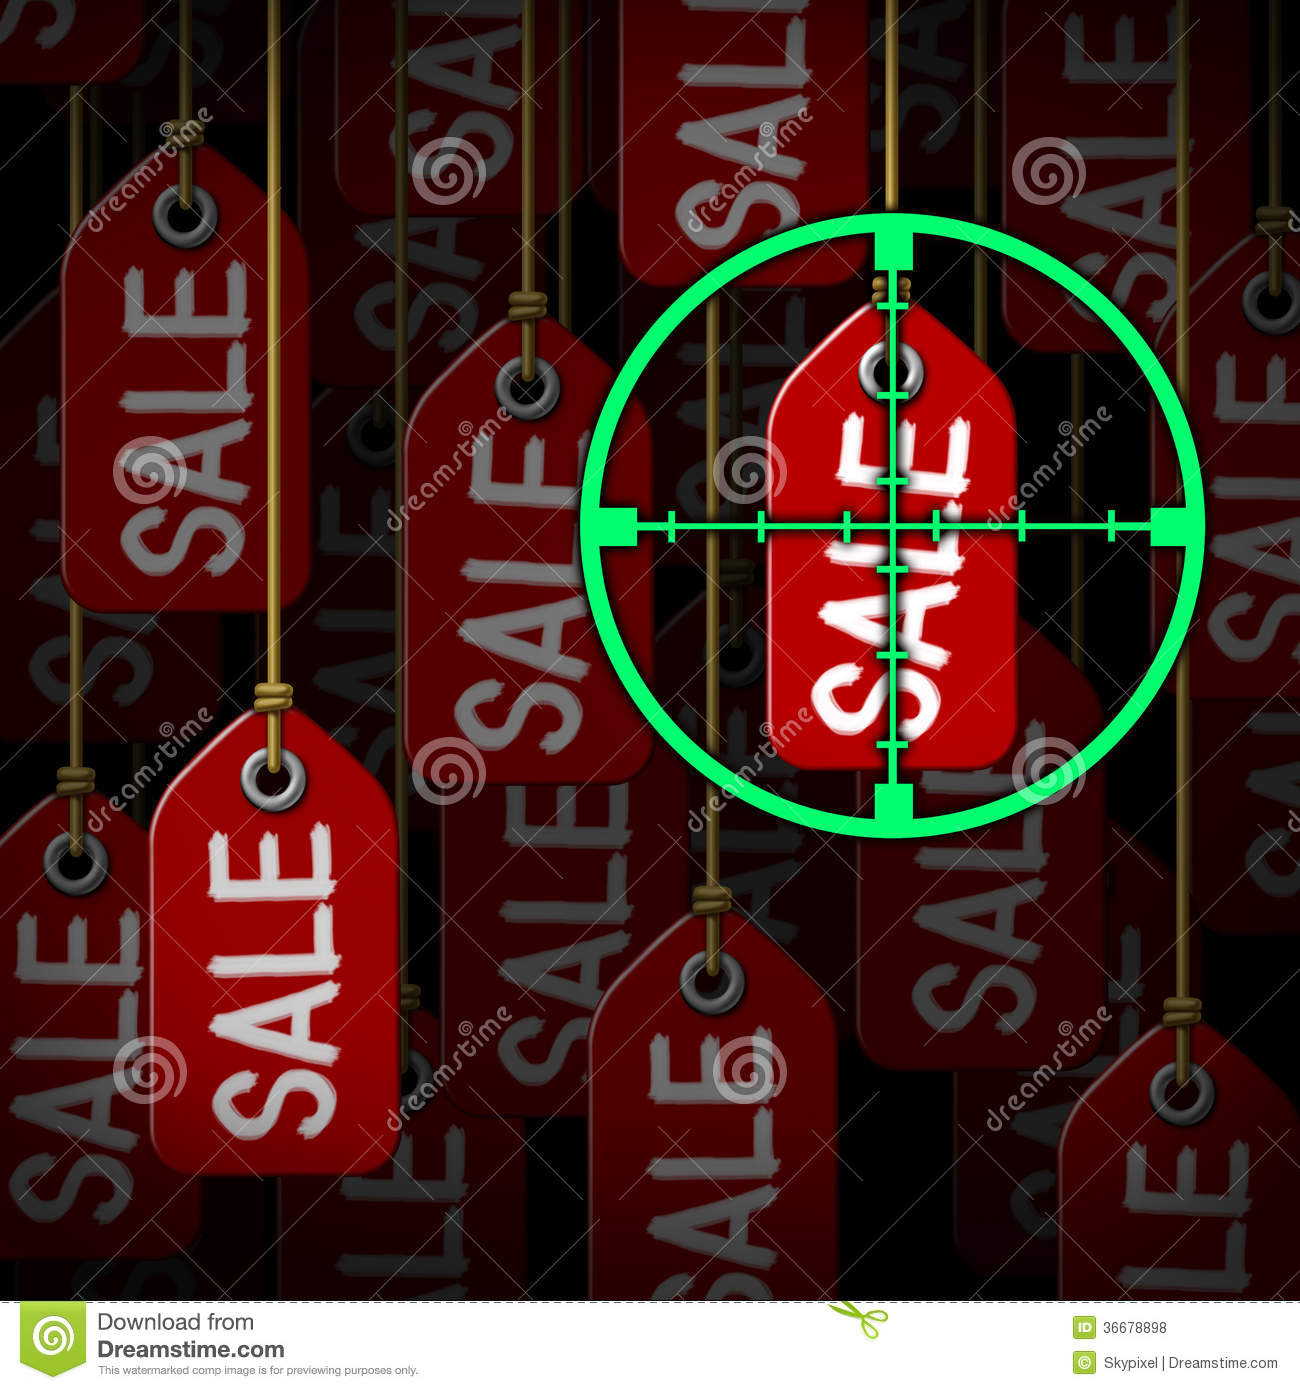 http://thumbs.dreamstime.com/z/bargain-hunter-hunting-sales-as-consumer-concept-target-crosshairs-aiming-hanging-price-tags-as-metaphor-36678898.jpg